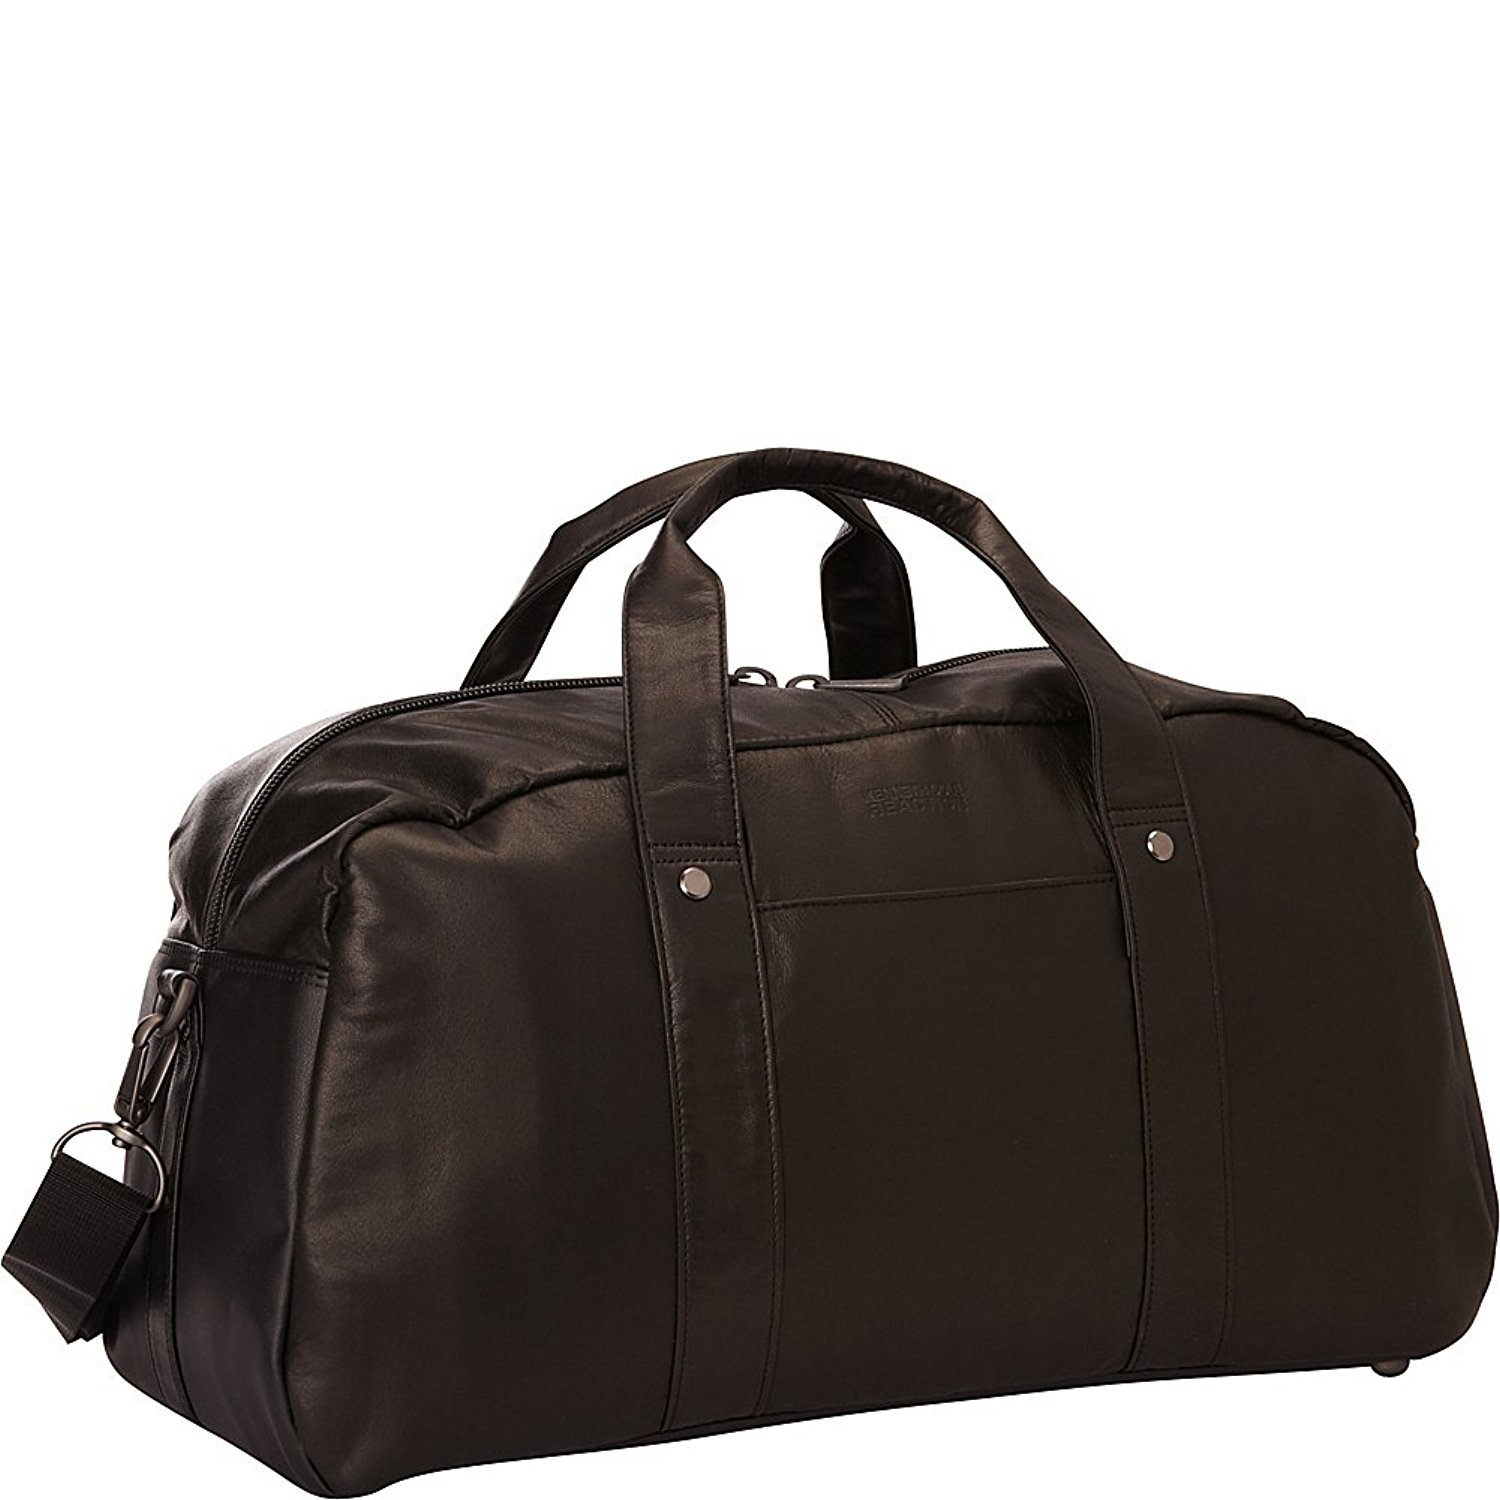 Kenneth Cole Genuine Leather Duffle Bag Travel Overnight